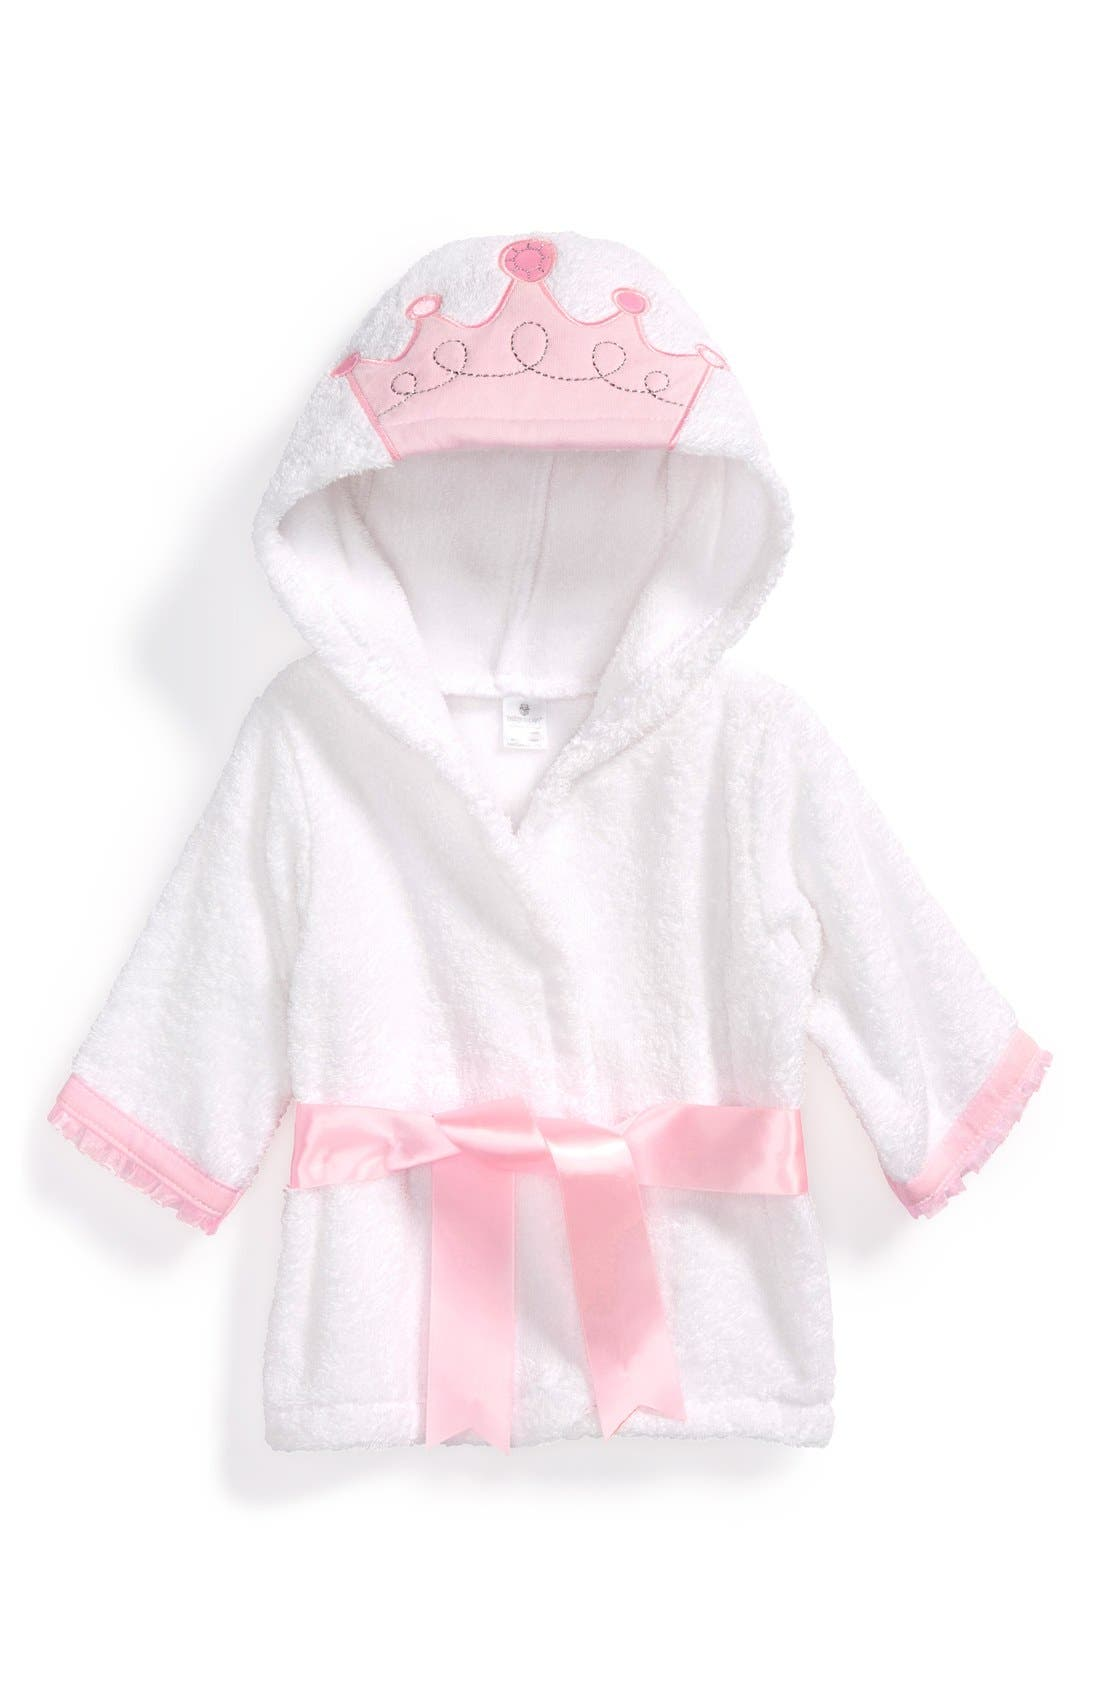 Little Princess Hooded Terry Robe,                             Main thumbnail 1, color,                             Pink/ White